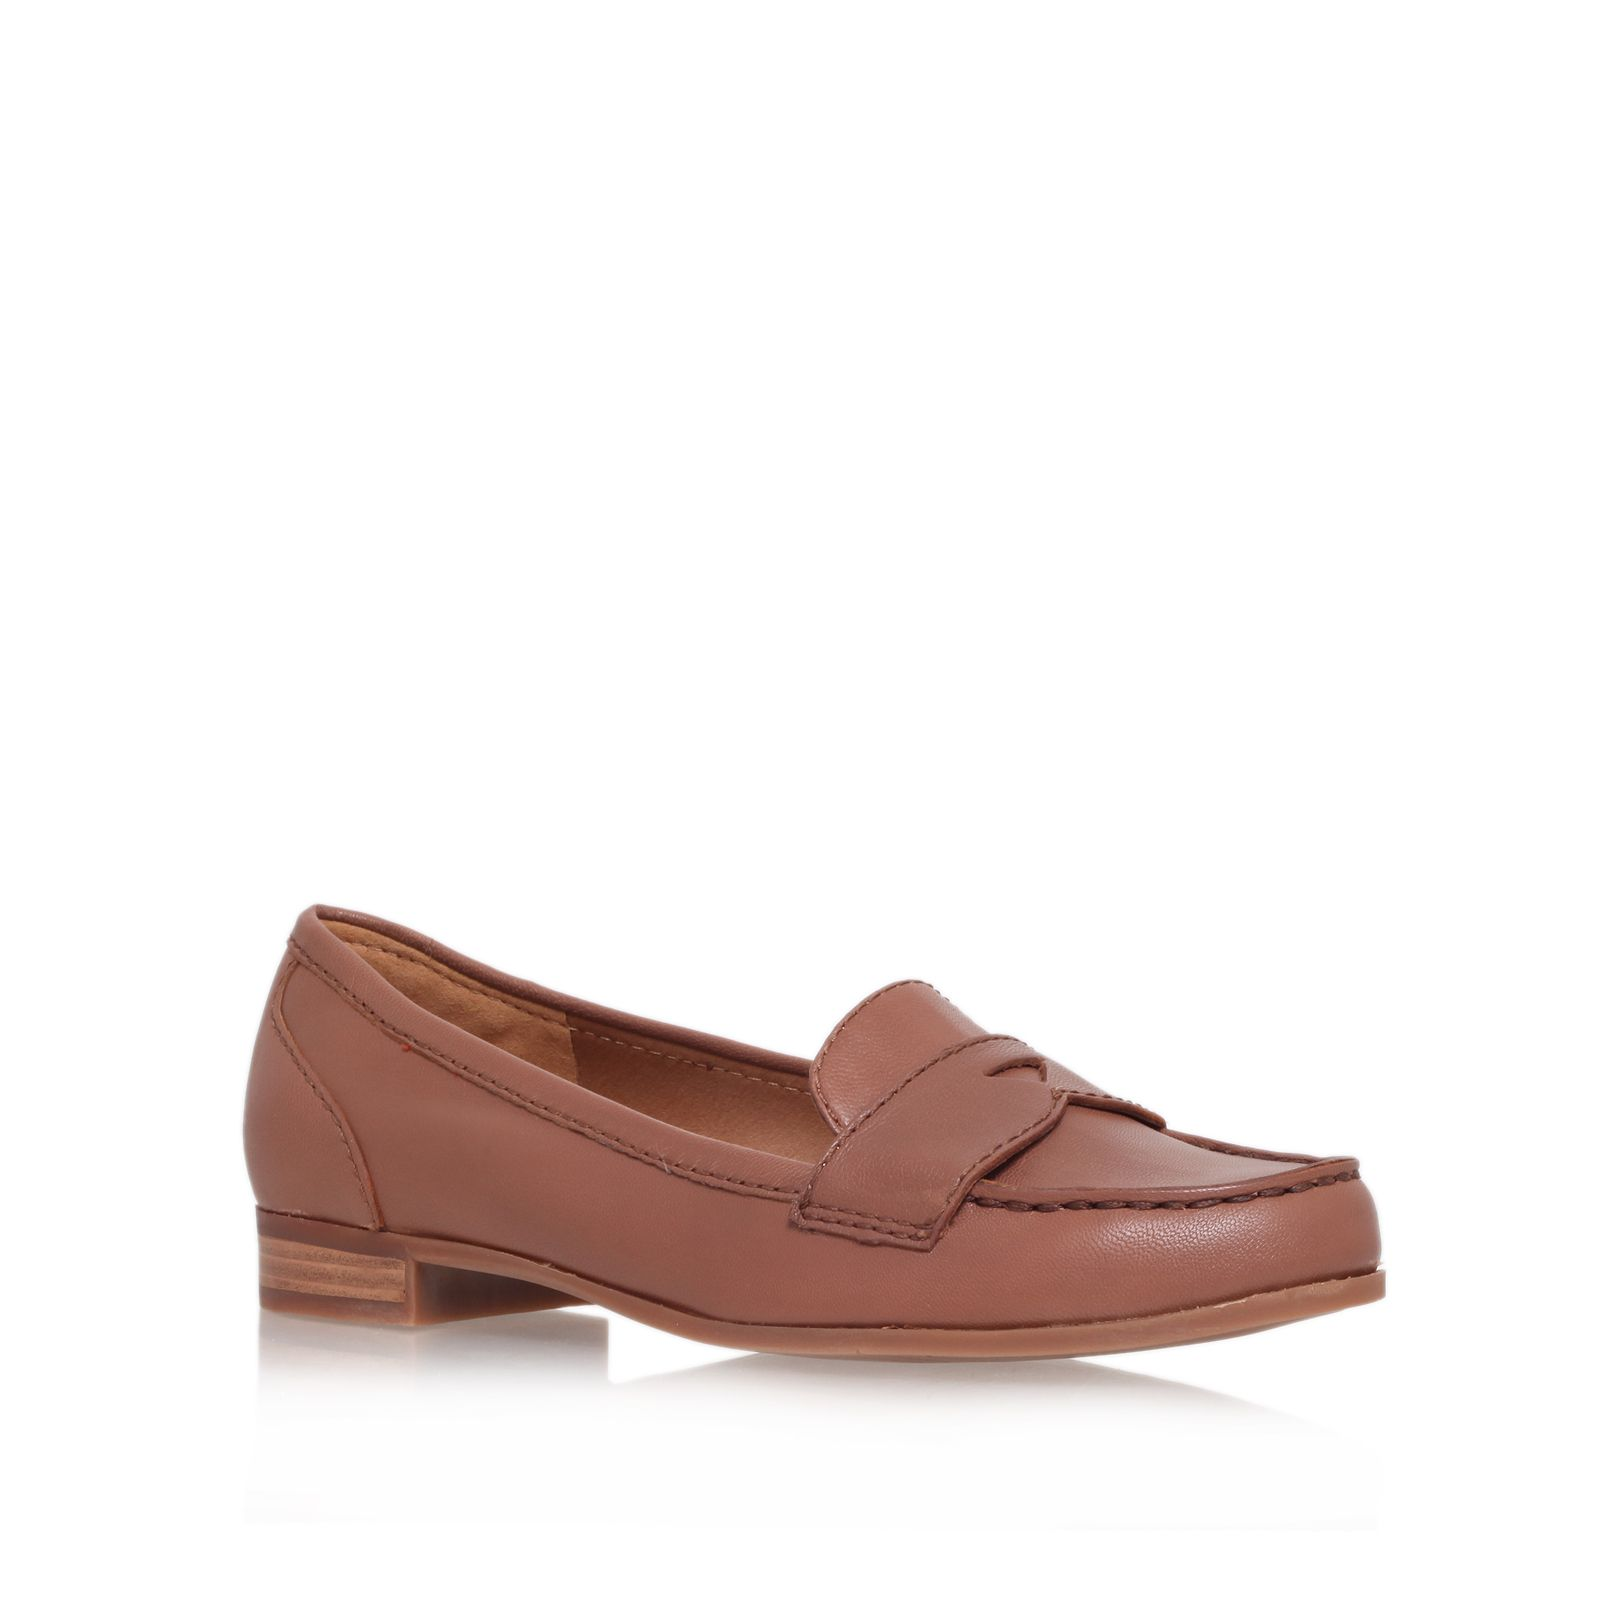 Sabeena flat loafer shoes